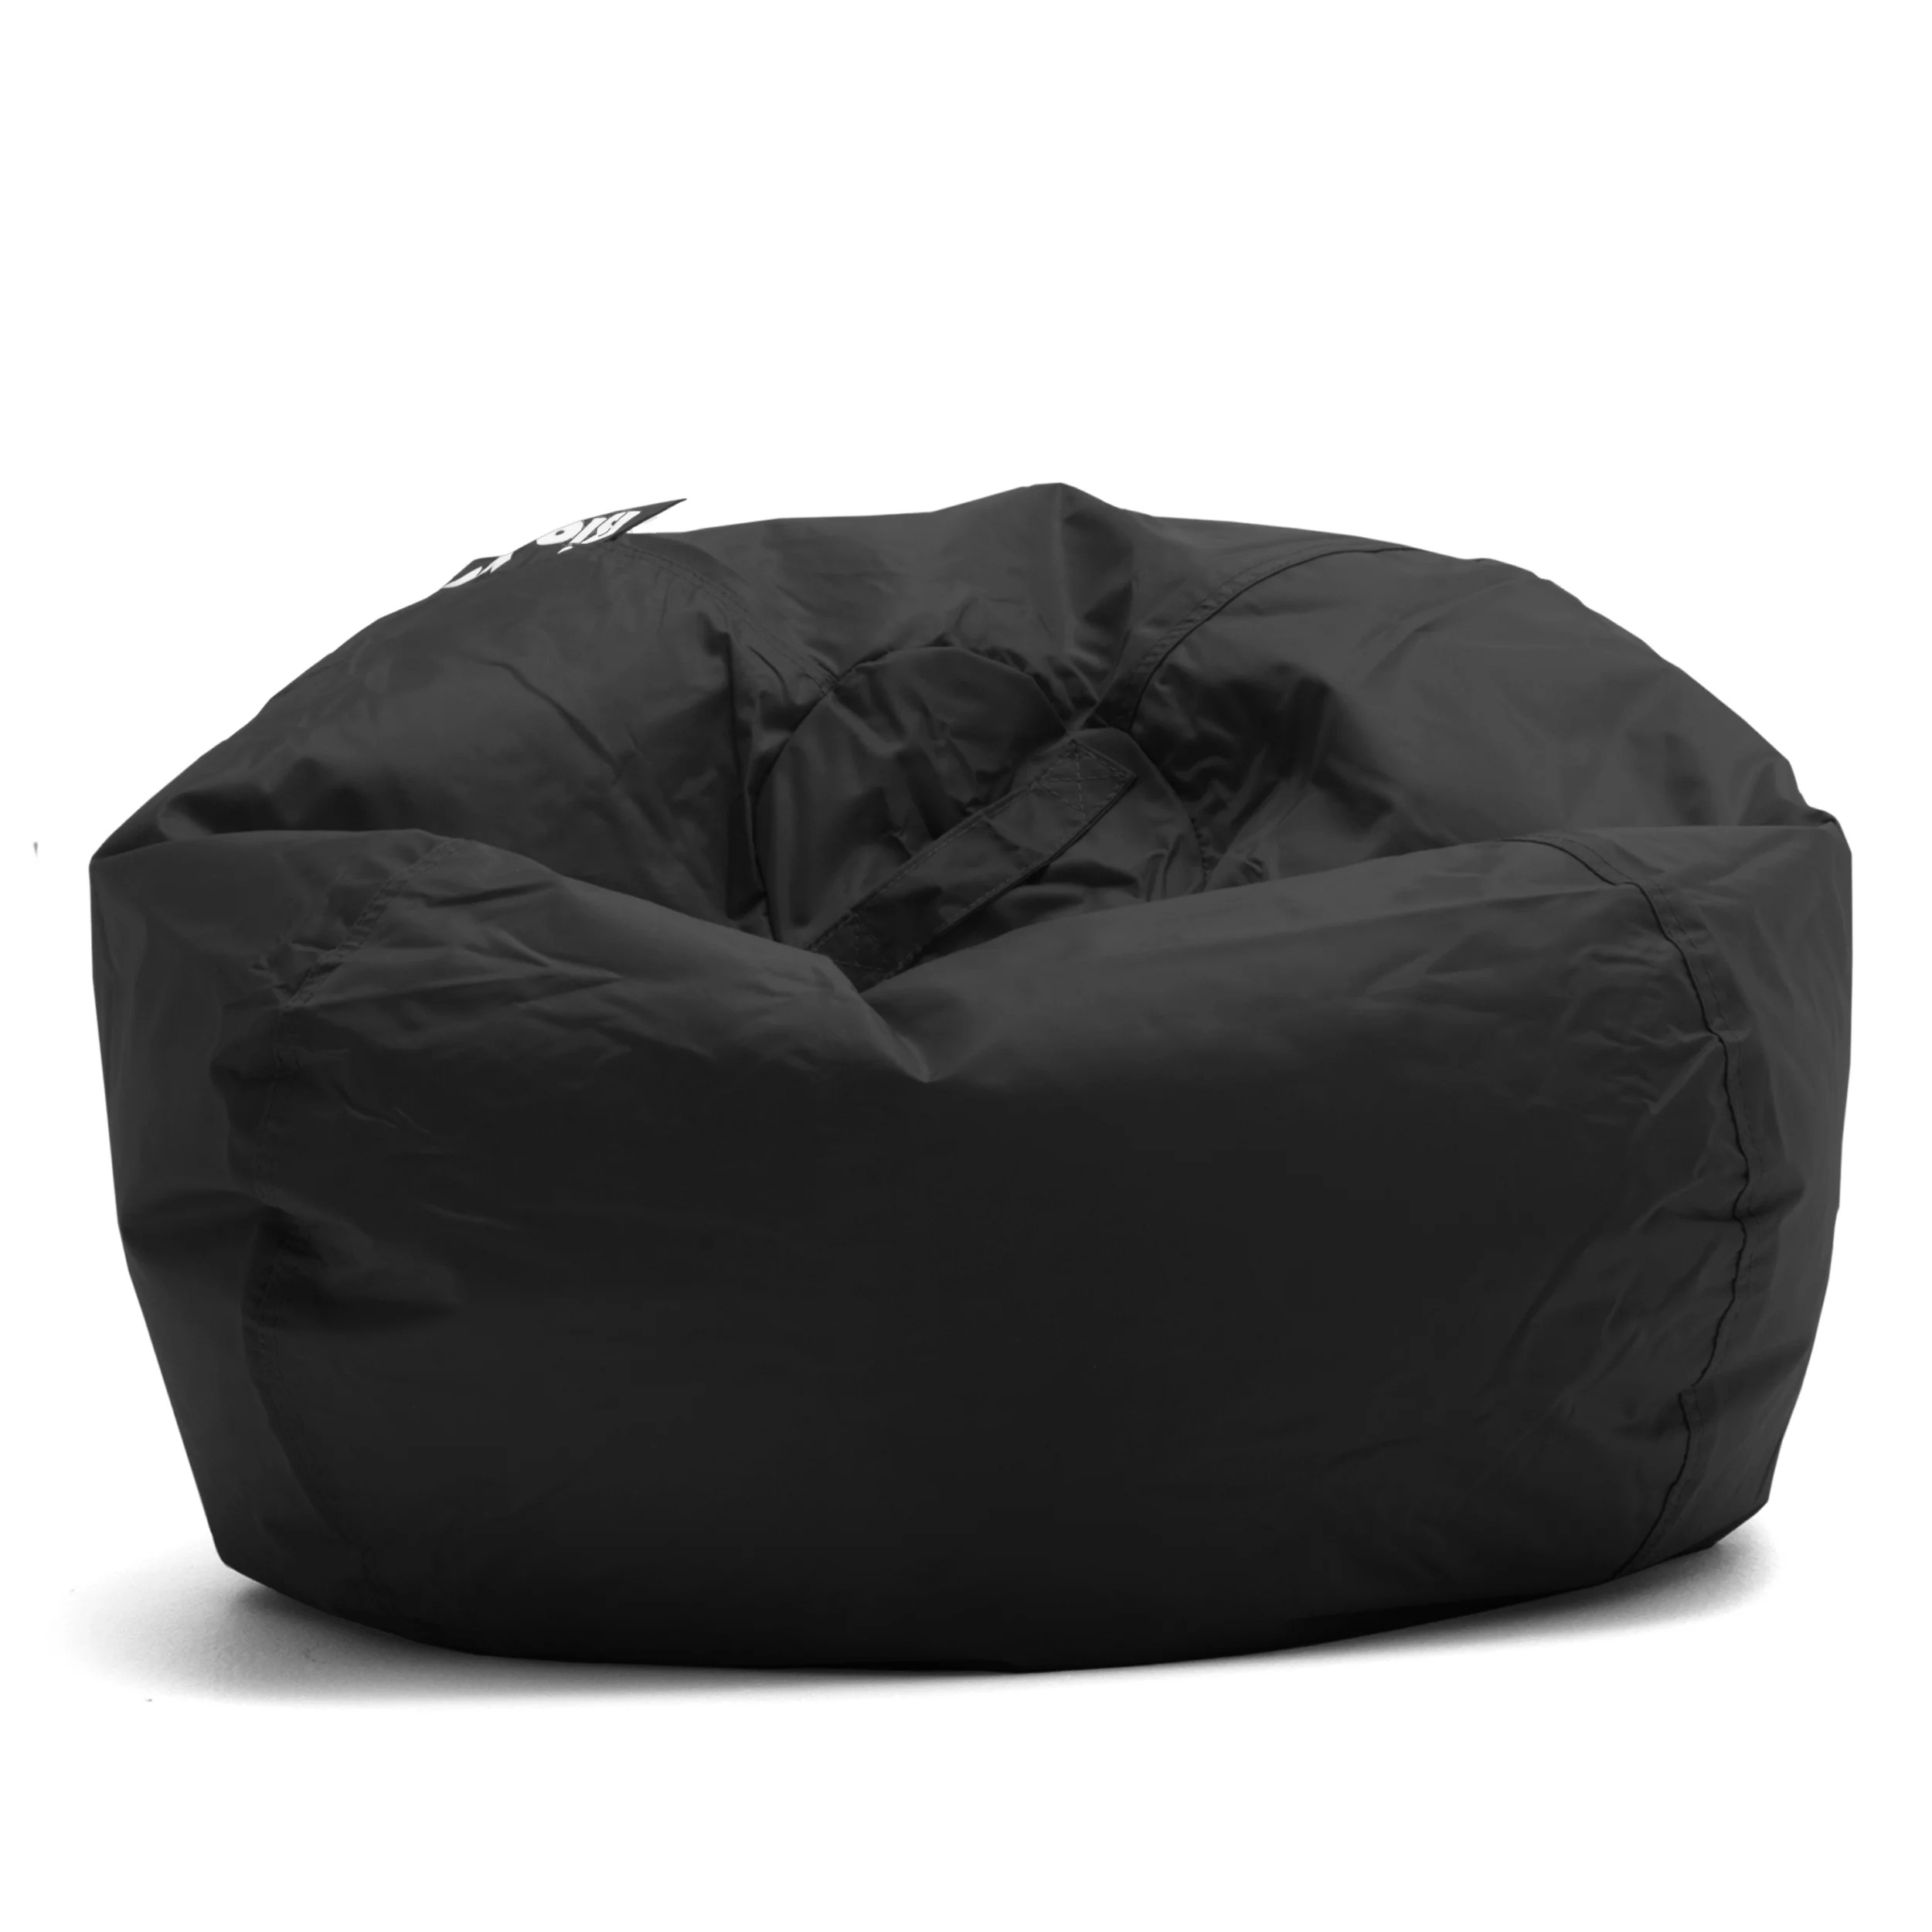 Prime Walmart Beanbag Chairs Facingwalls Ncnpc Chair Design For Home Ncnpcorg